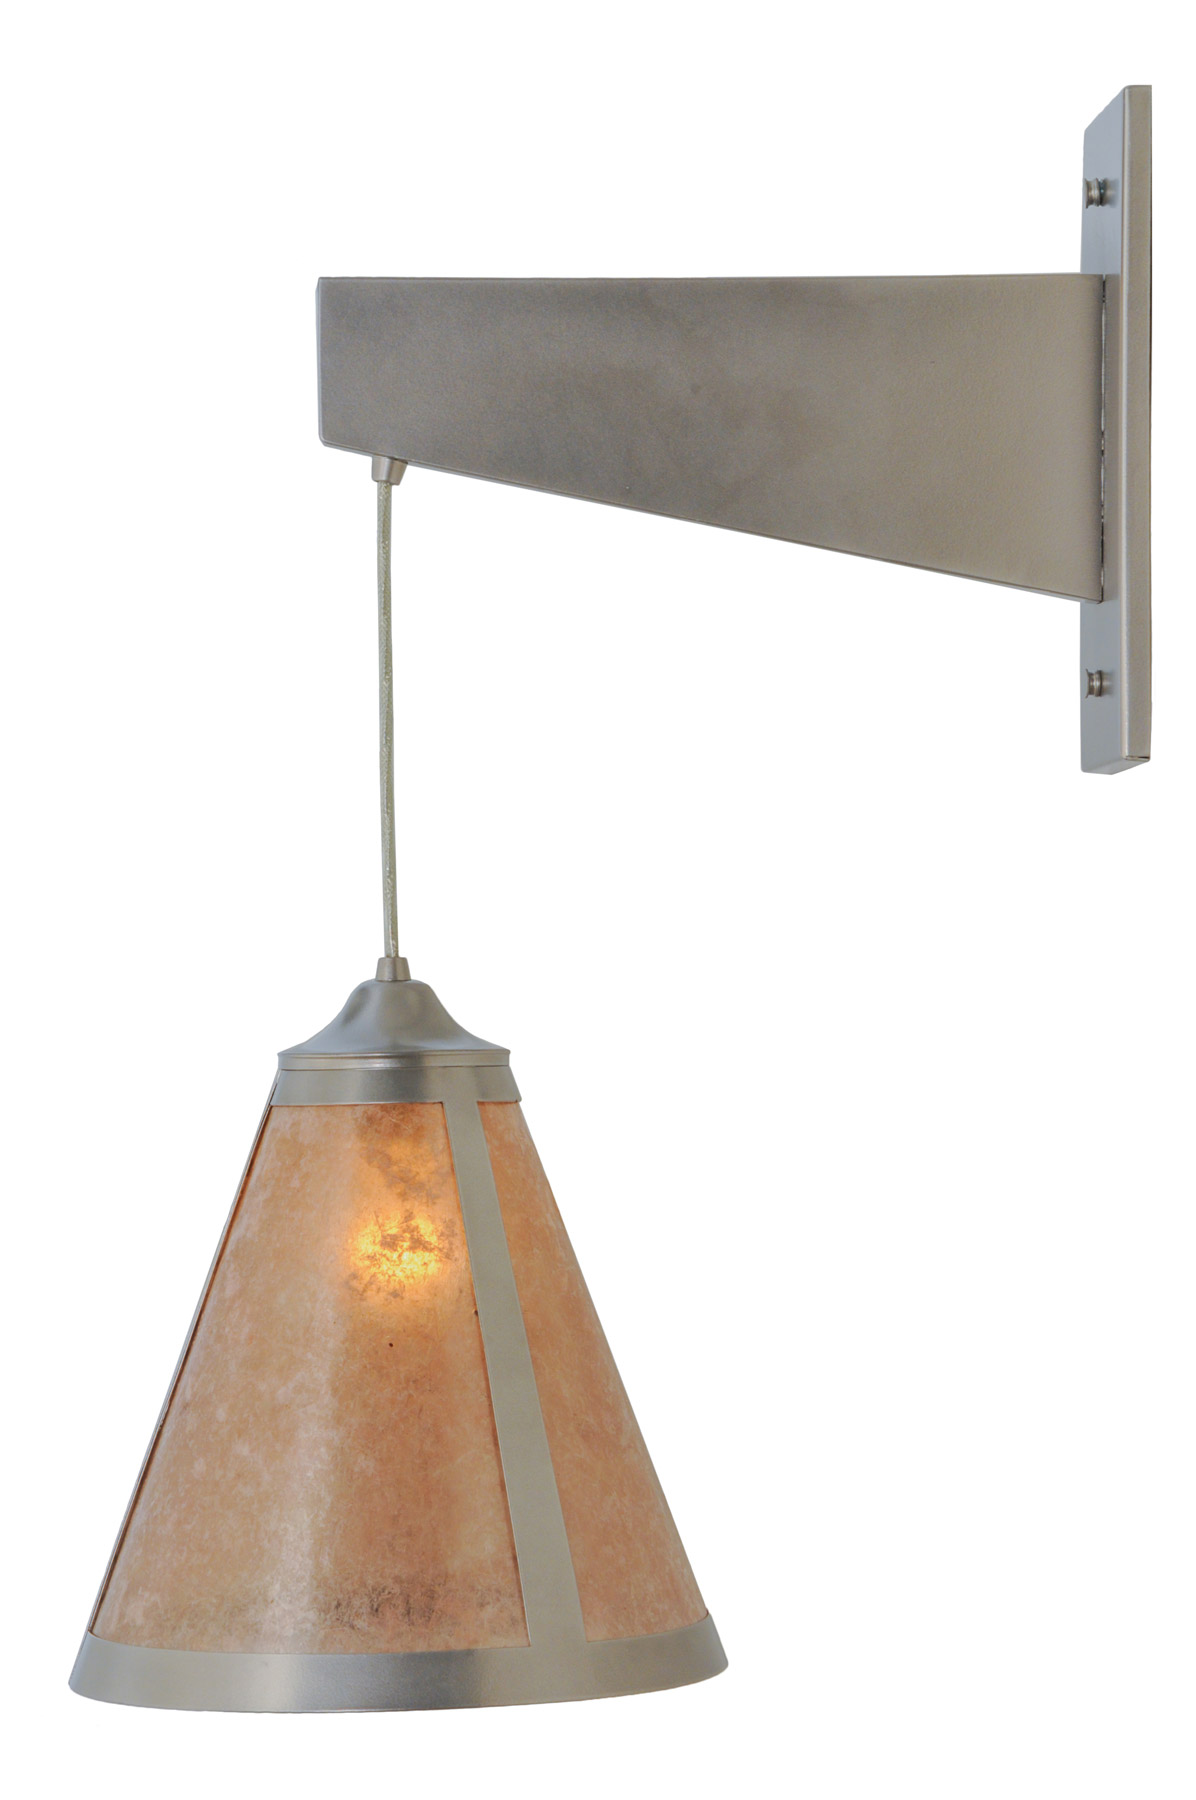 Meyda 148257 Cantilever Wall Sconce